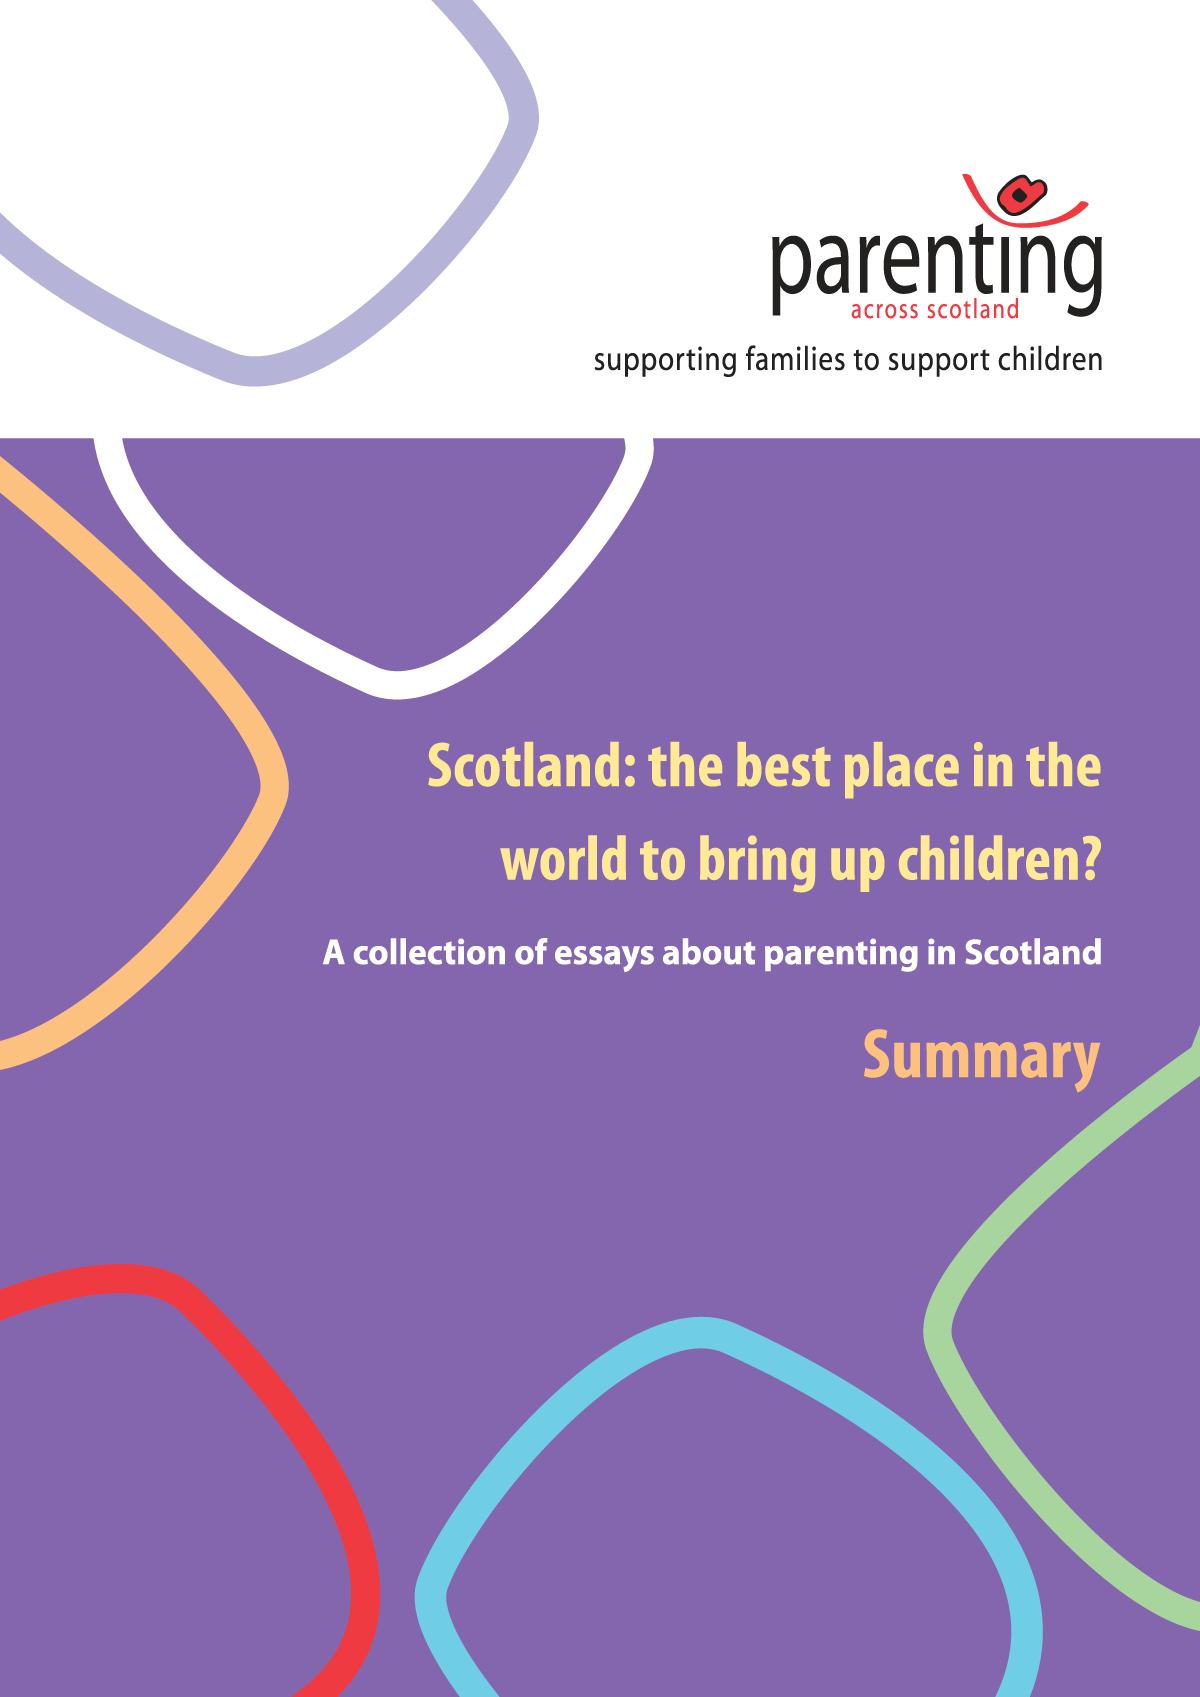 Scotland: the best place to bring up children? (summary)